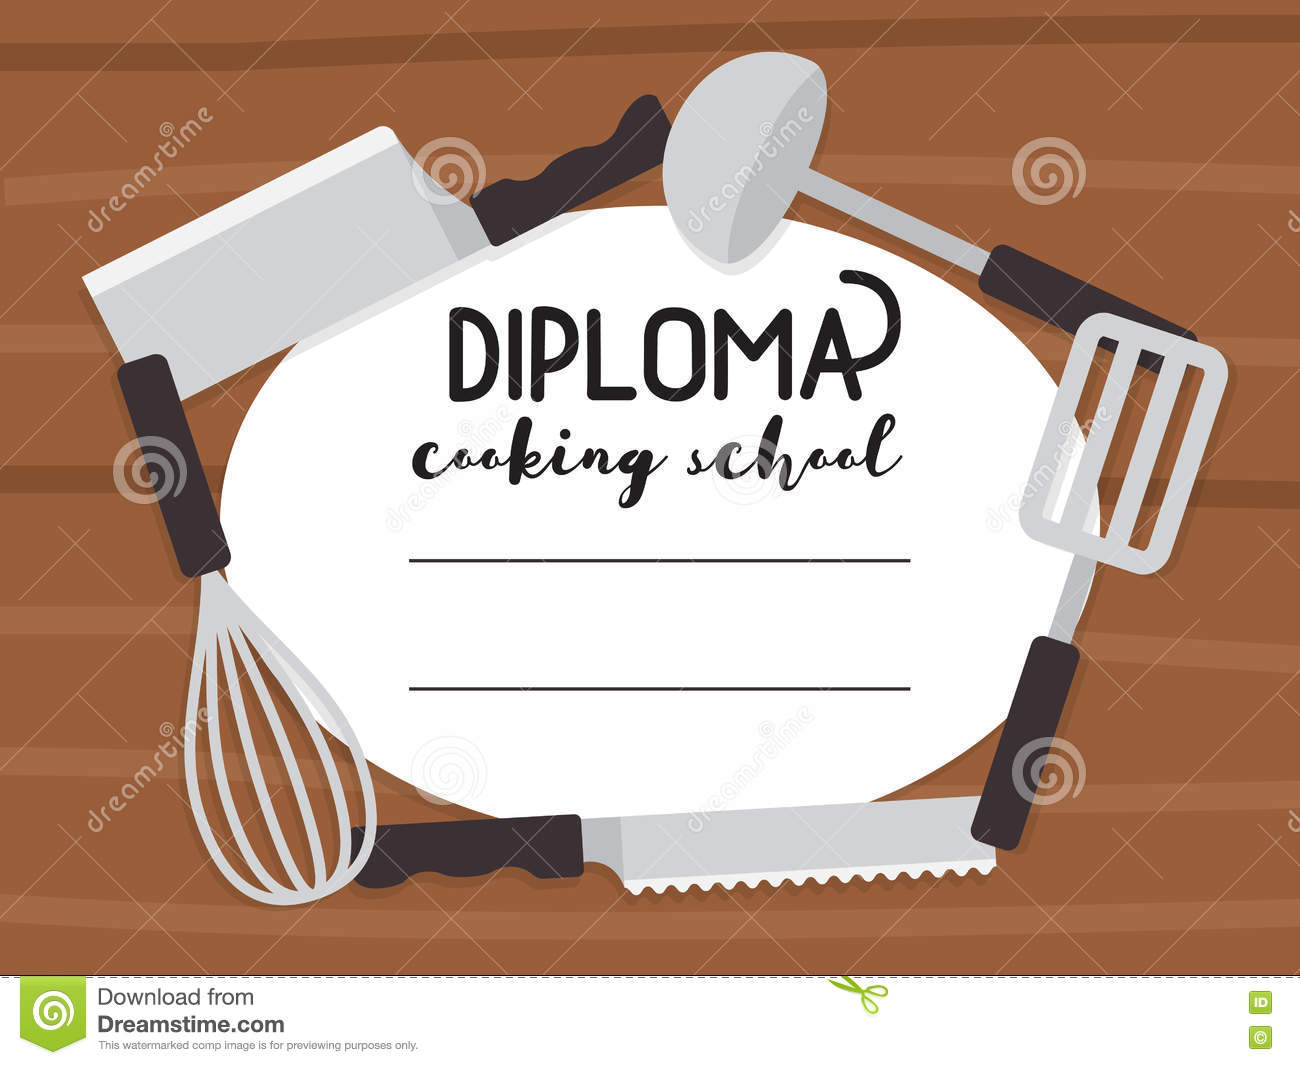 cooking school diploma stock vector illustration of